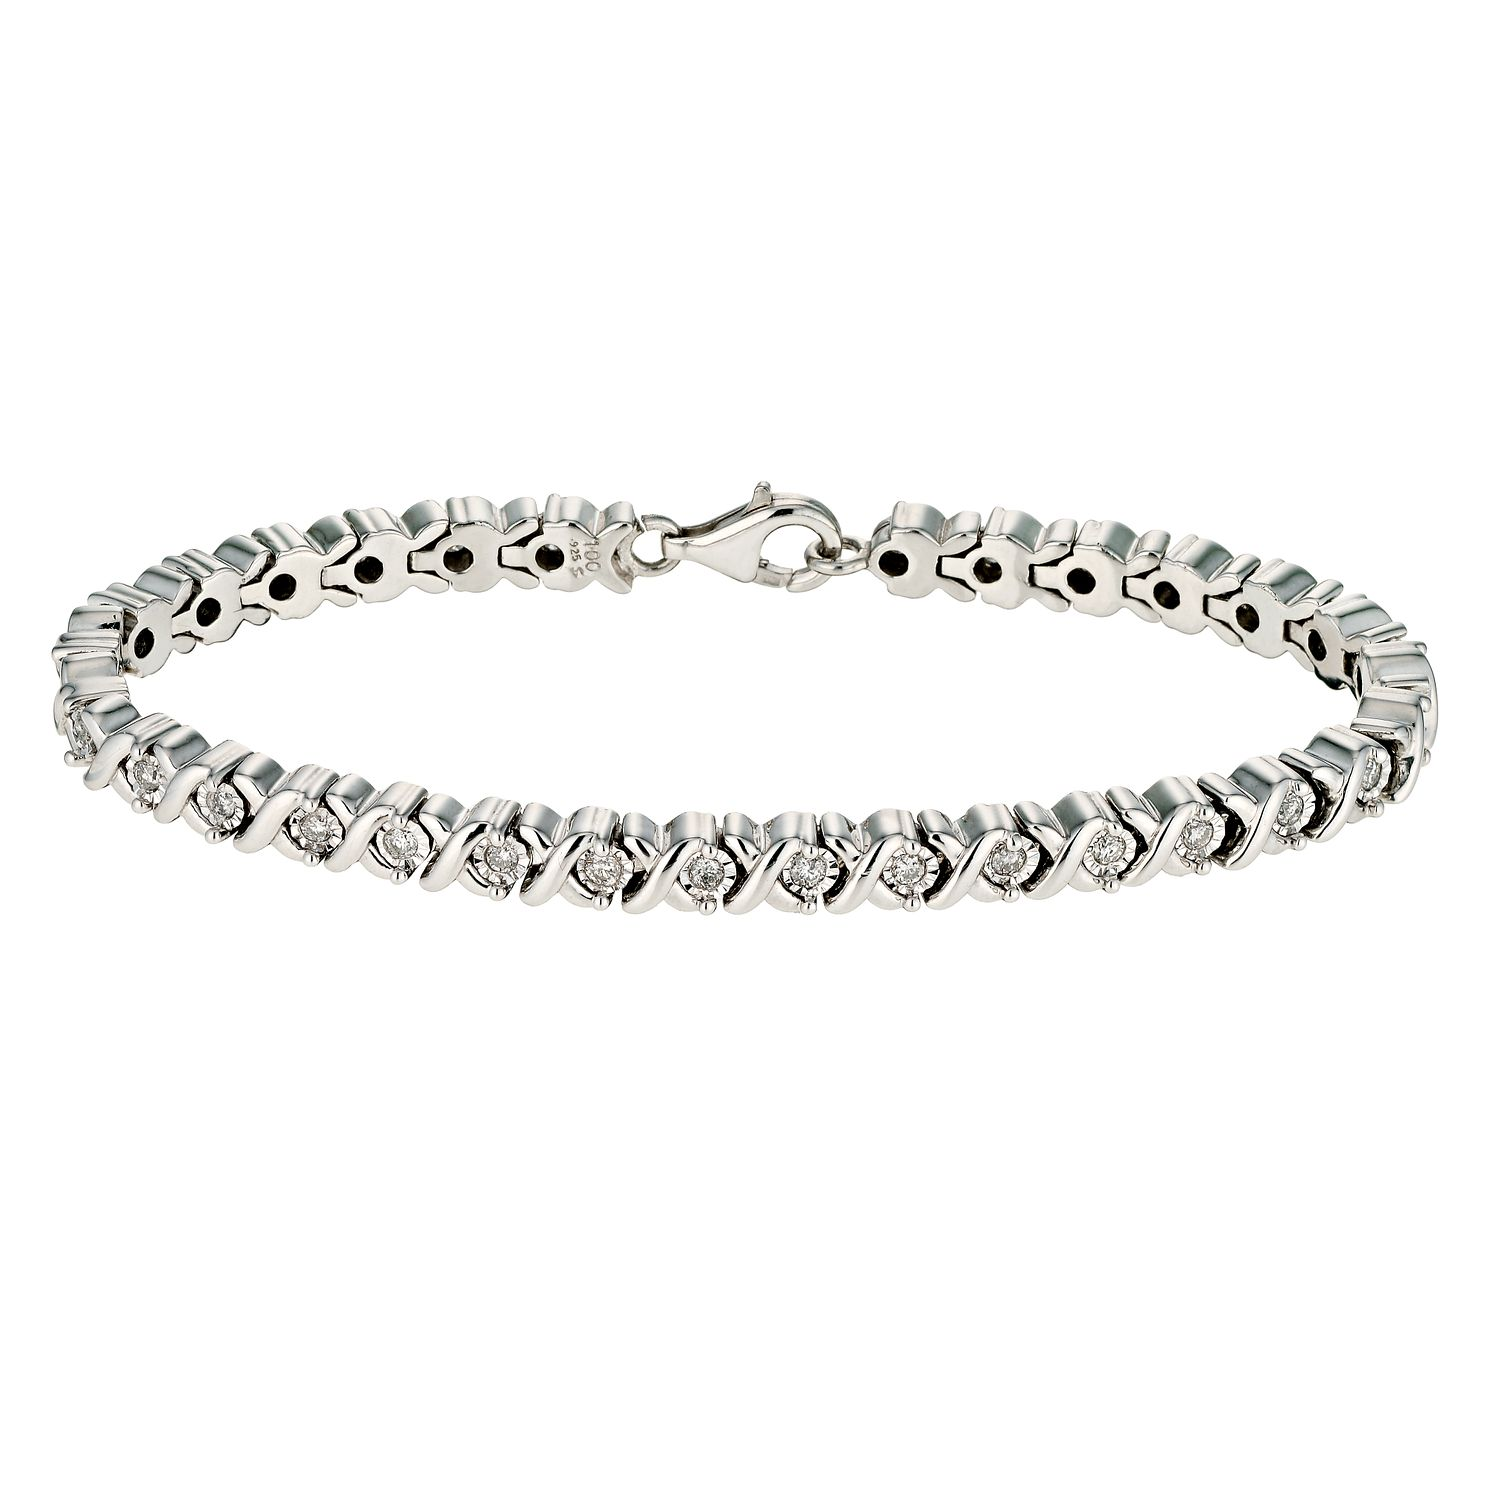 yurman david diamonds black pave bracelet lyst in petite pav silverblack jewelry women with s diamond